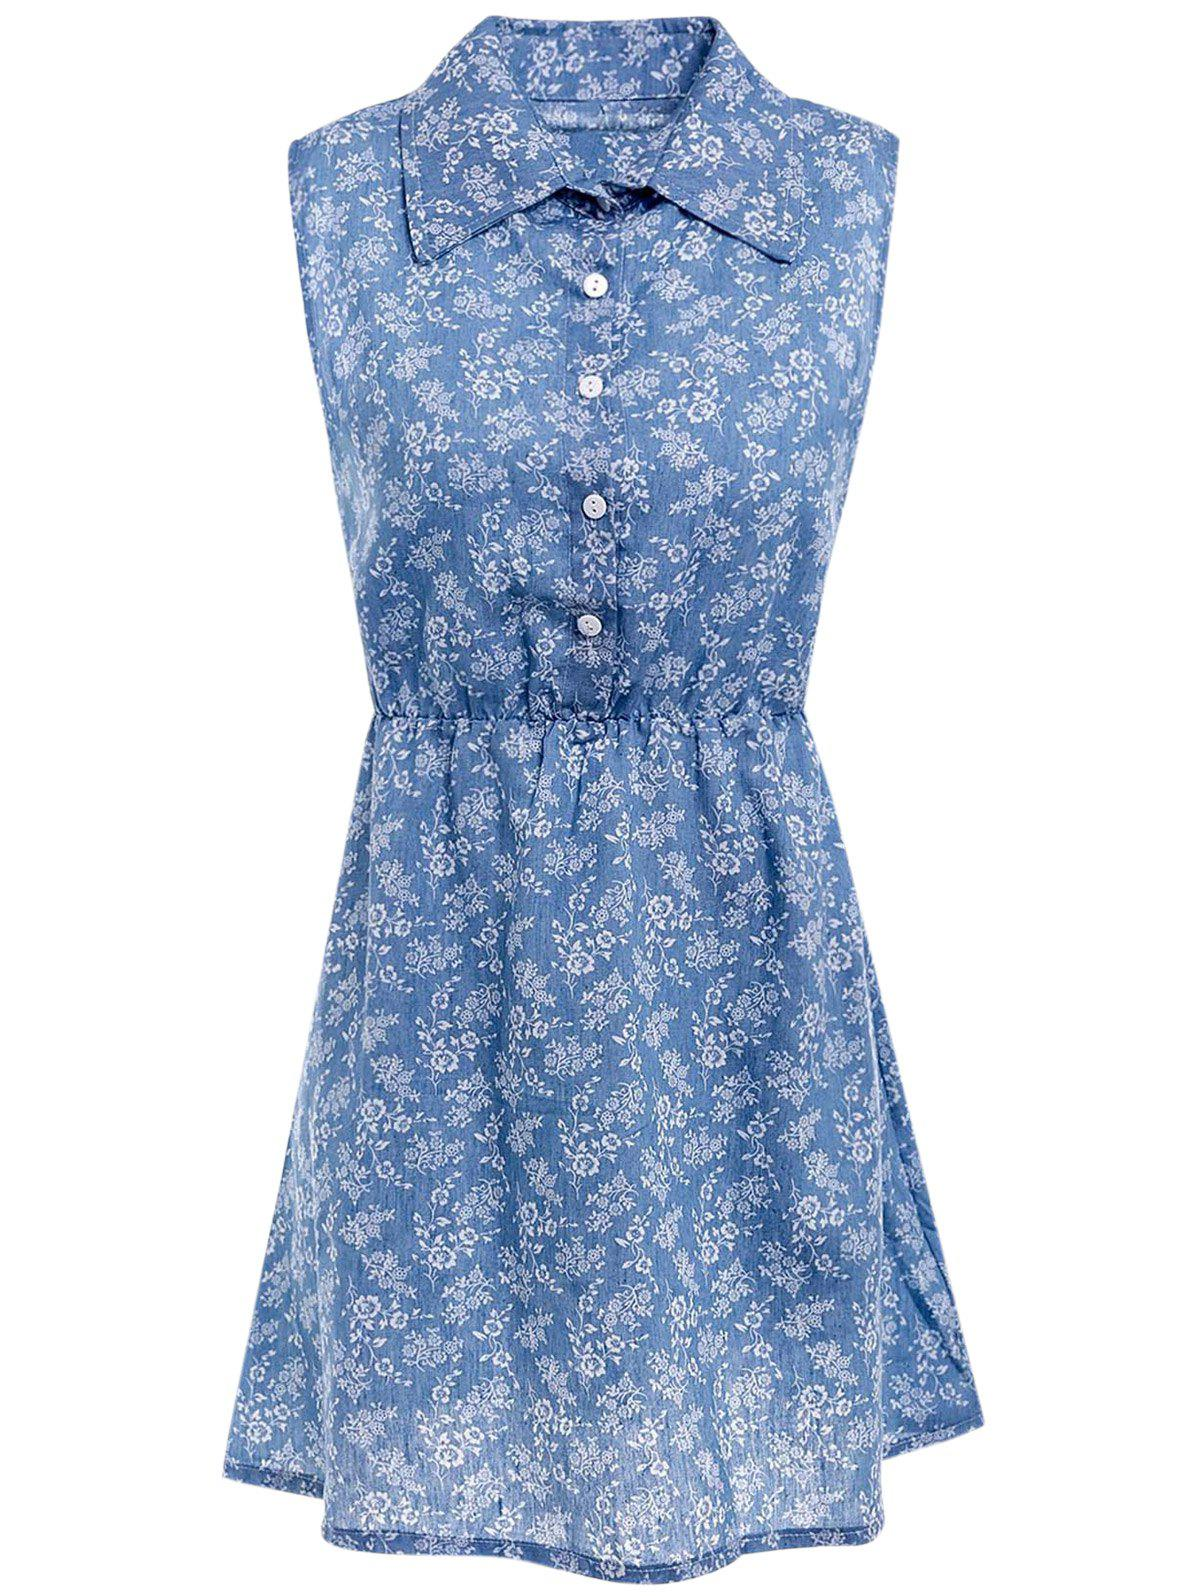 Stylish Women's Shirt Collar Sleeveless Printed Denim Shirt Dress - BLUE M